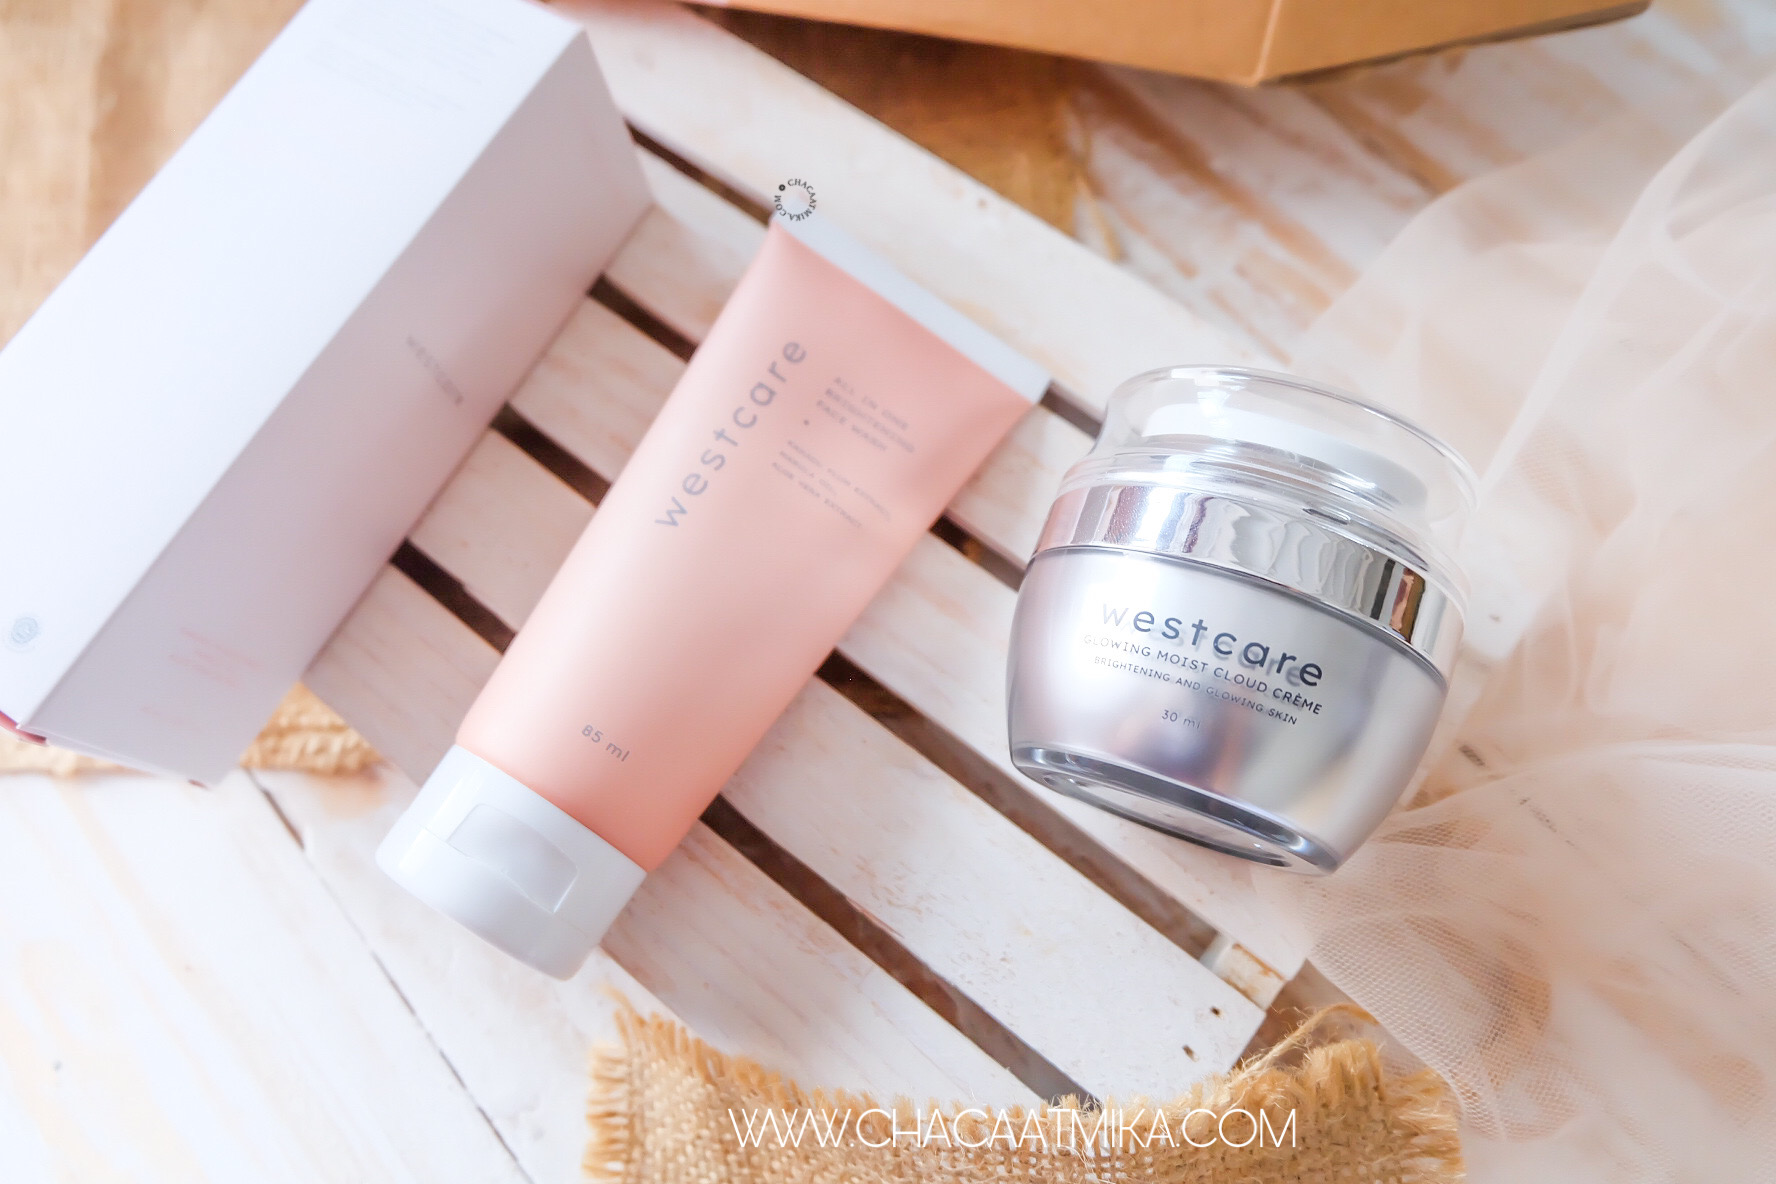 Review: Westcare All in One Brightening Facewash dan Westcare Glowing Moist Cloud Creme